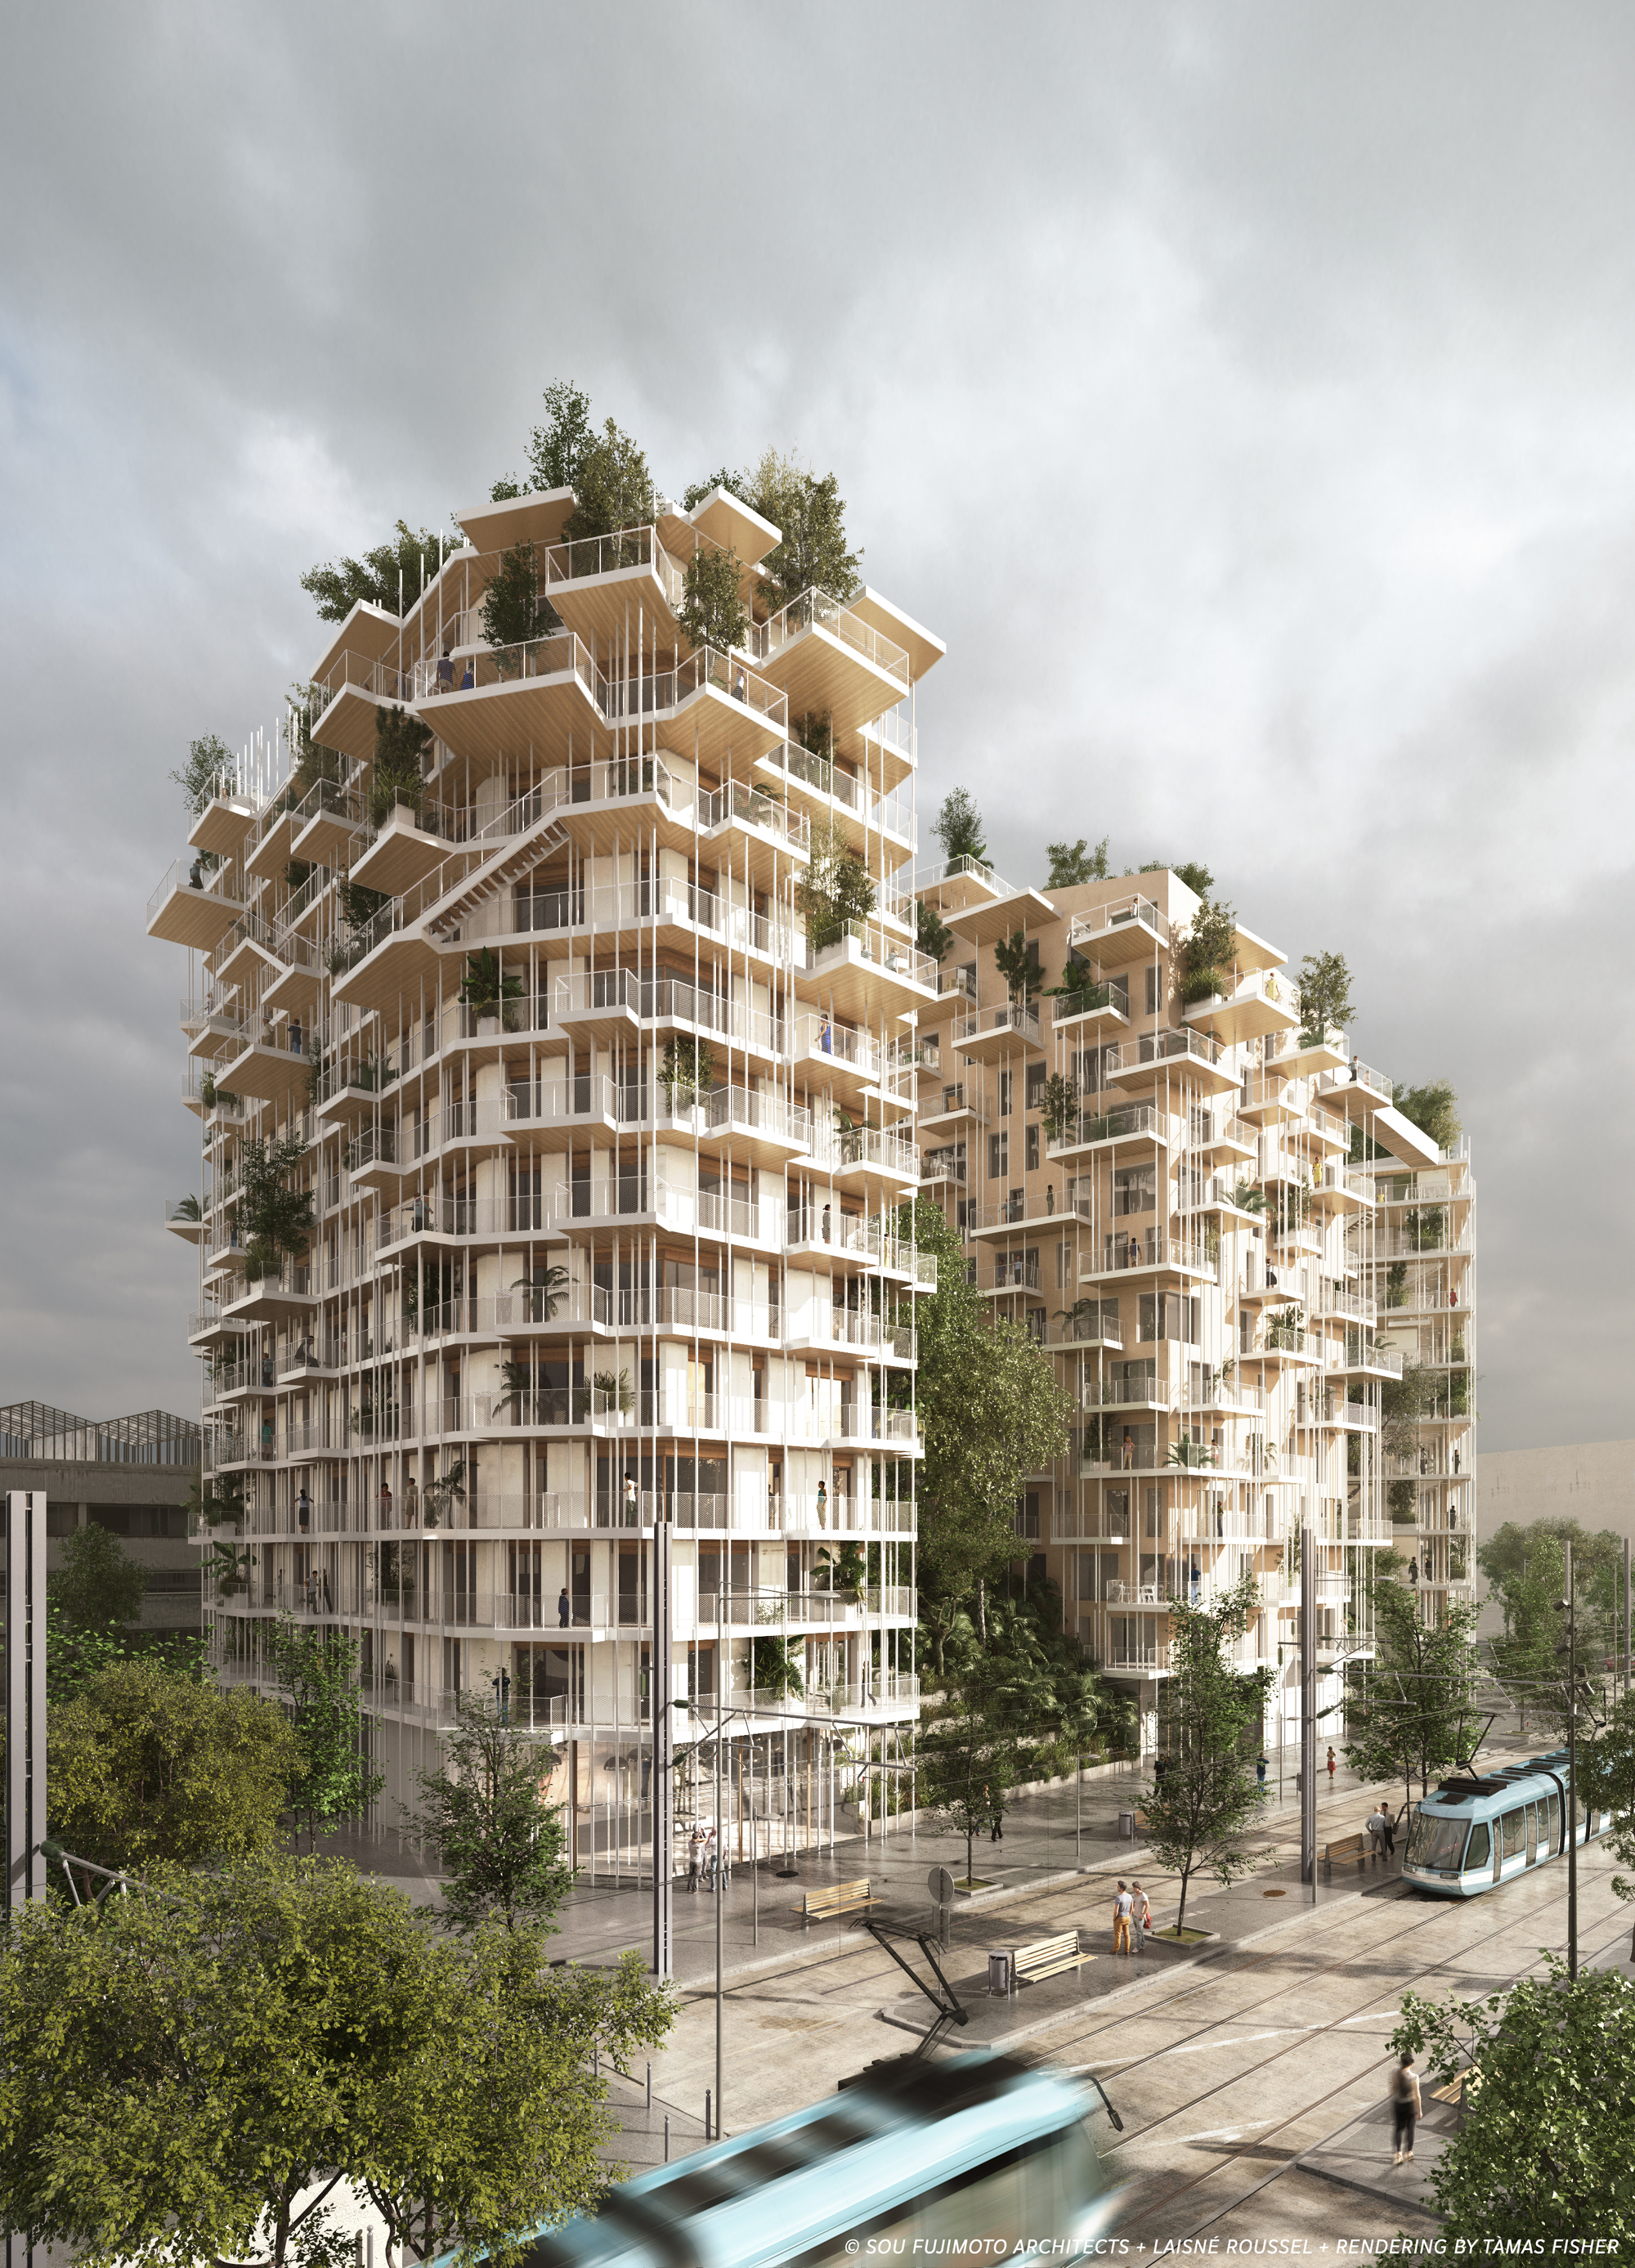 Sou Fujimoto and Laisné Roussel Propose Wooden Mixed-Use Tower for ...